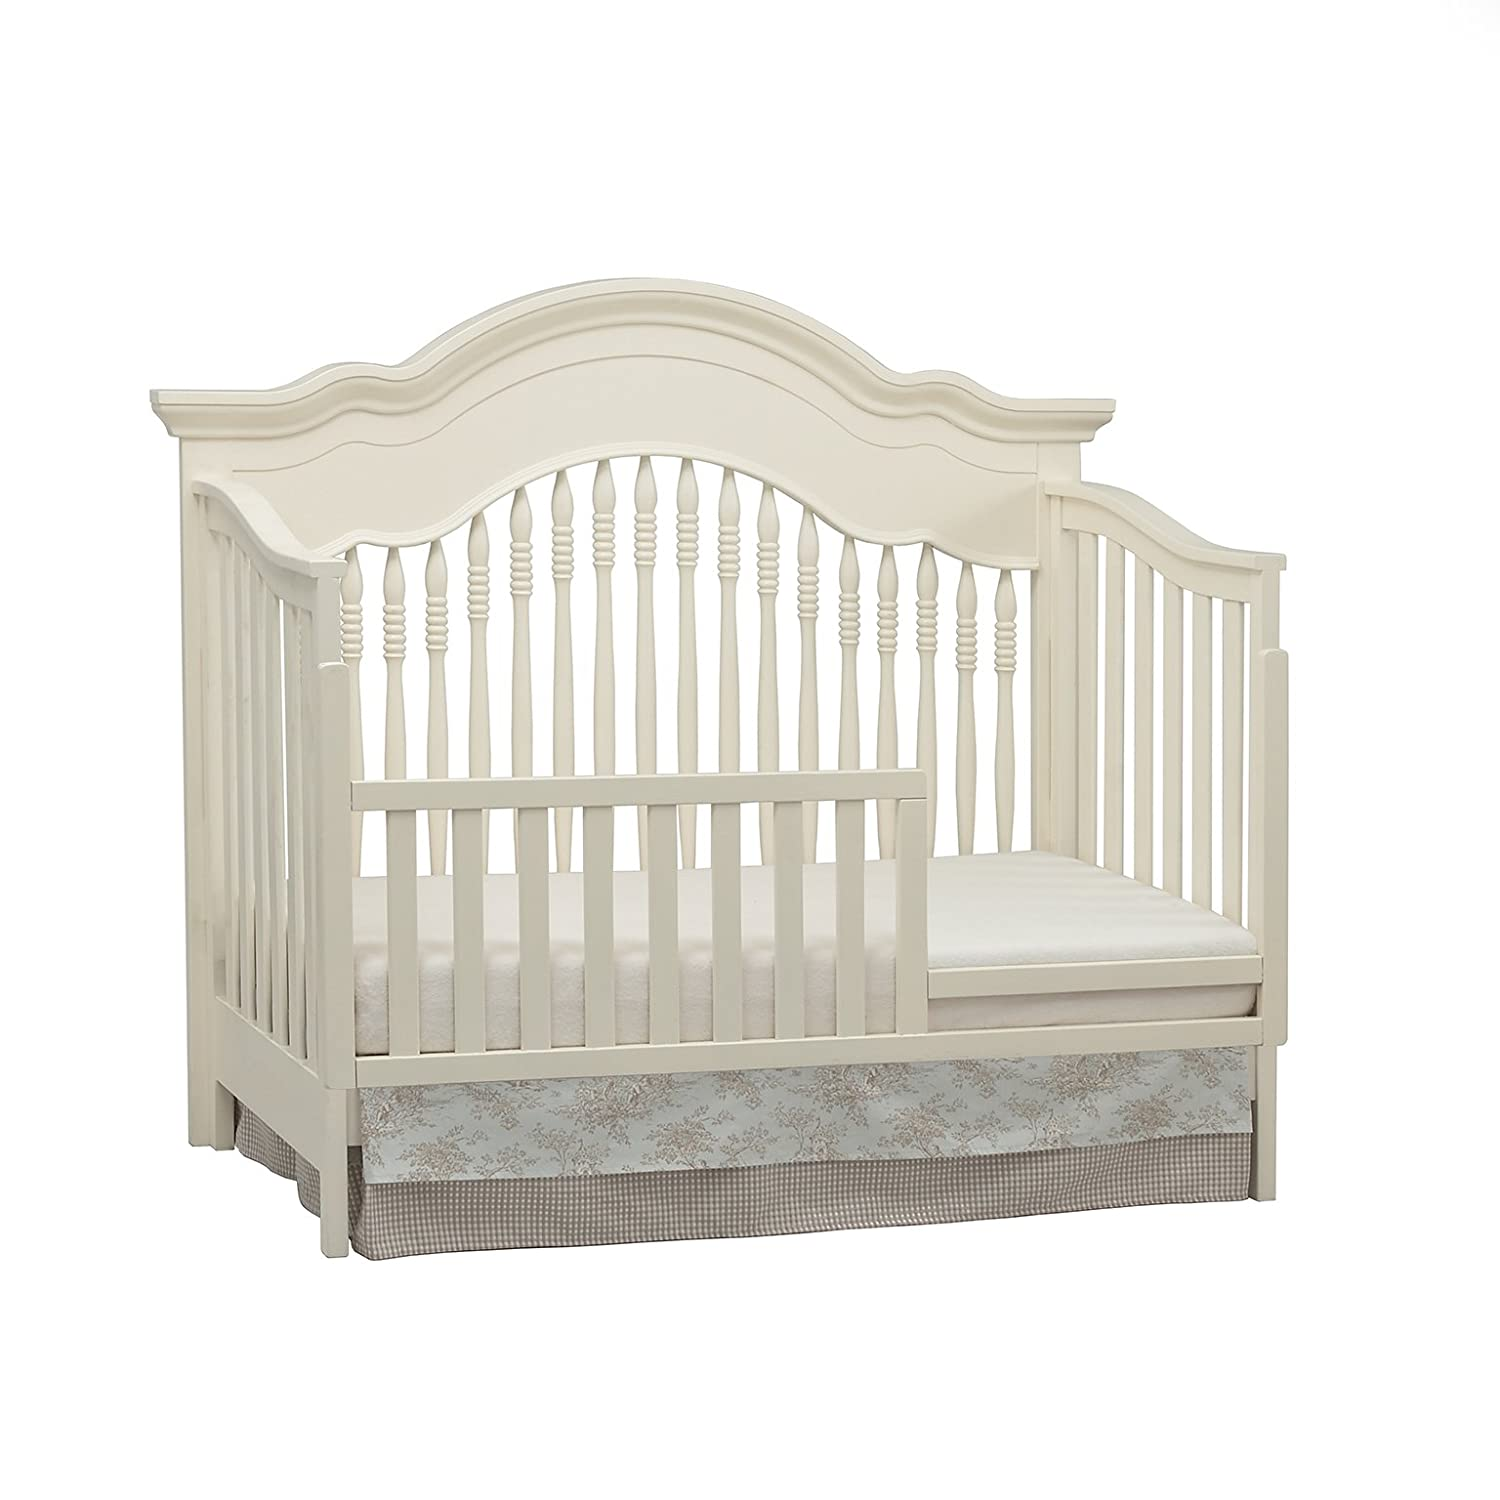 Baby bed olx - Baby Bed Olx 46